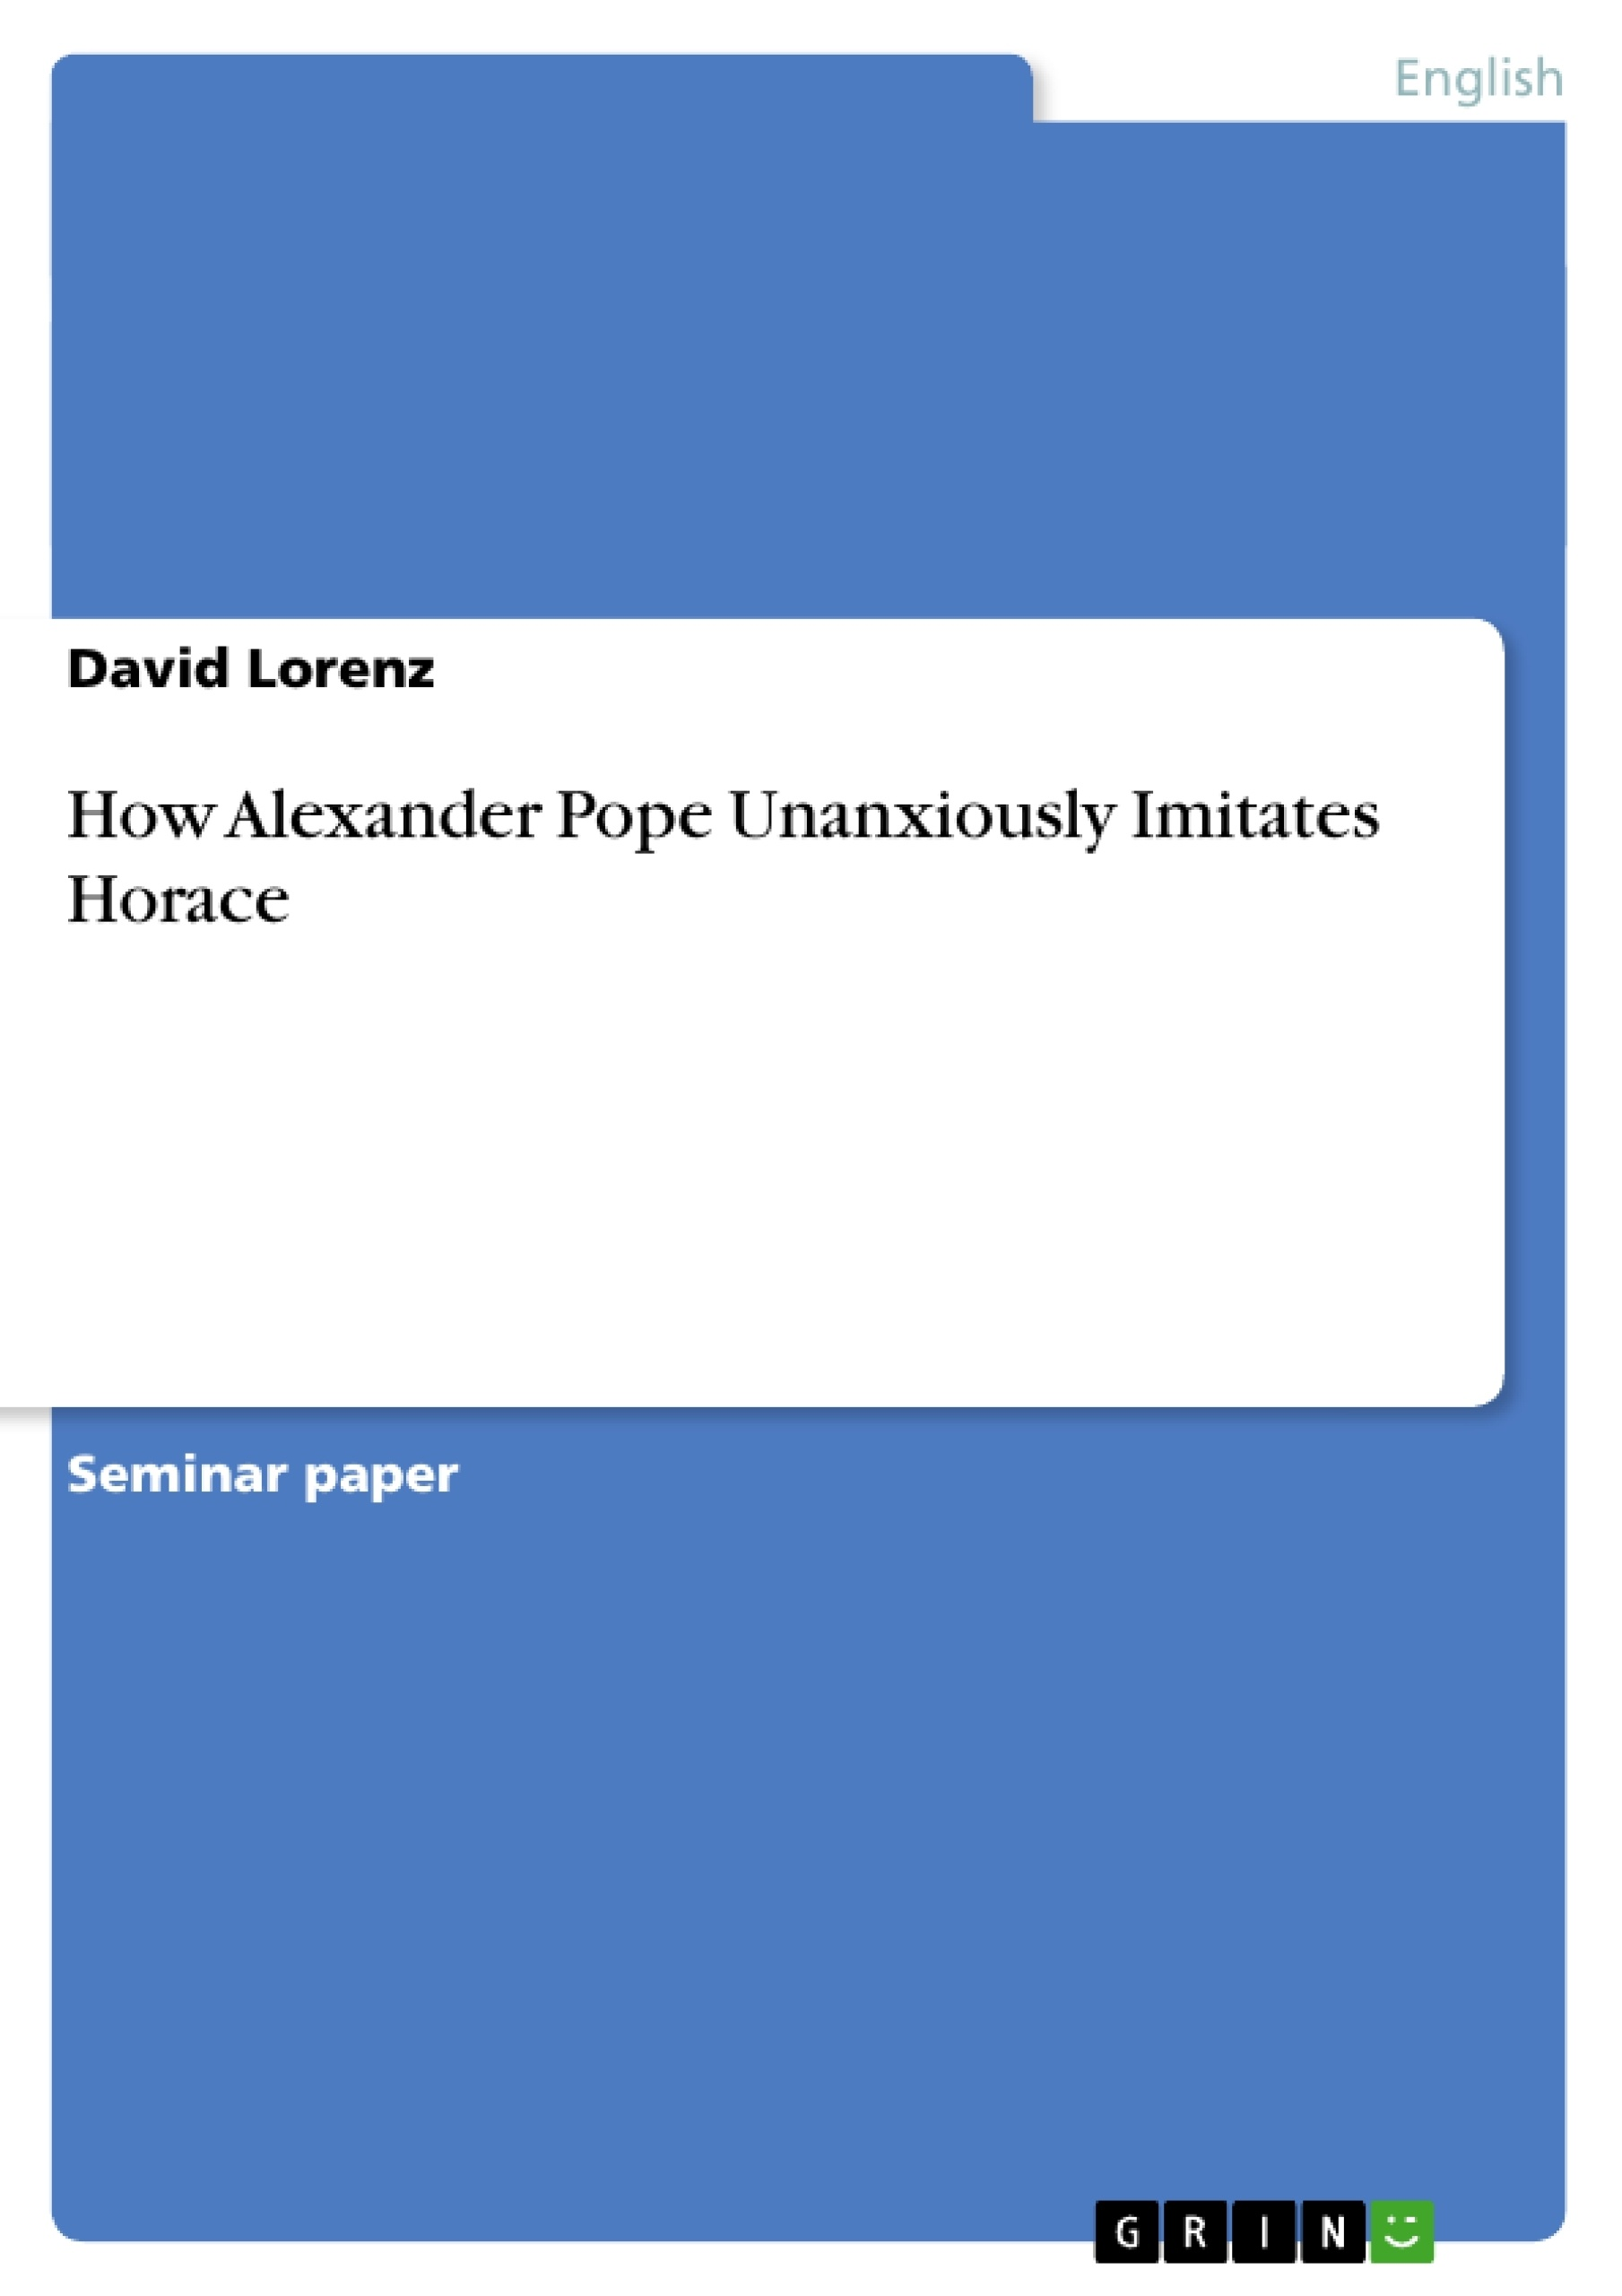 pope essay on criticism analysis how alexander pope unanxiously  how alexander pope unanxiously imitates horace publish your upload your own papers earn money and win analysis essay thesis